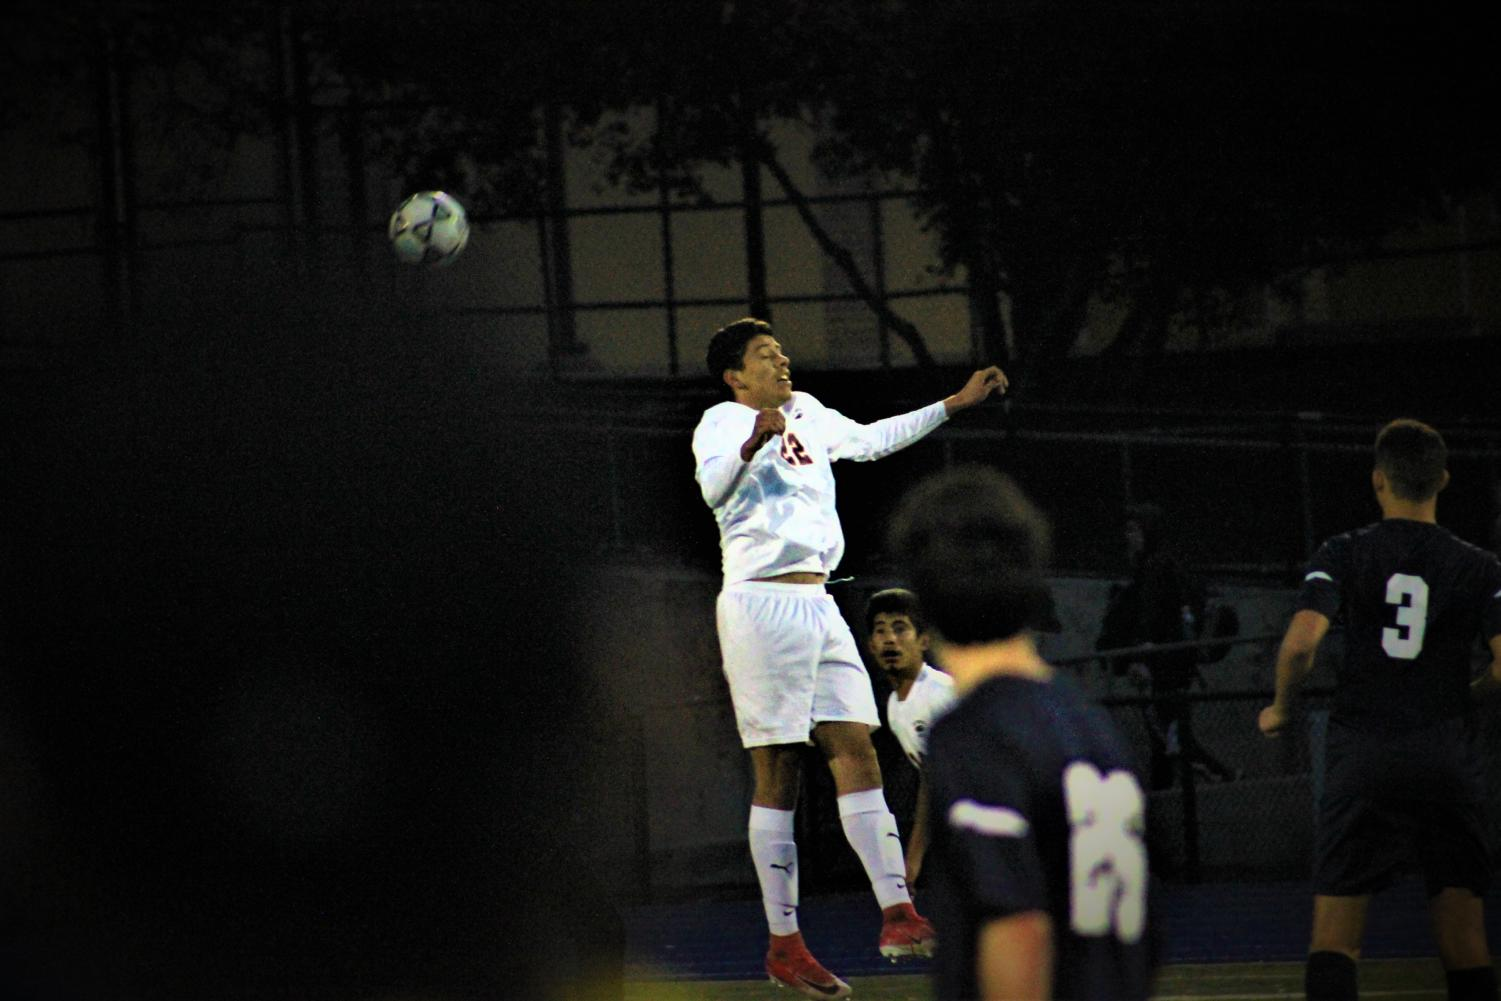 A member of the JV boys soccer team leaps for a header in the middle of a game.